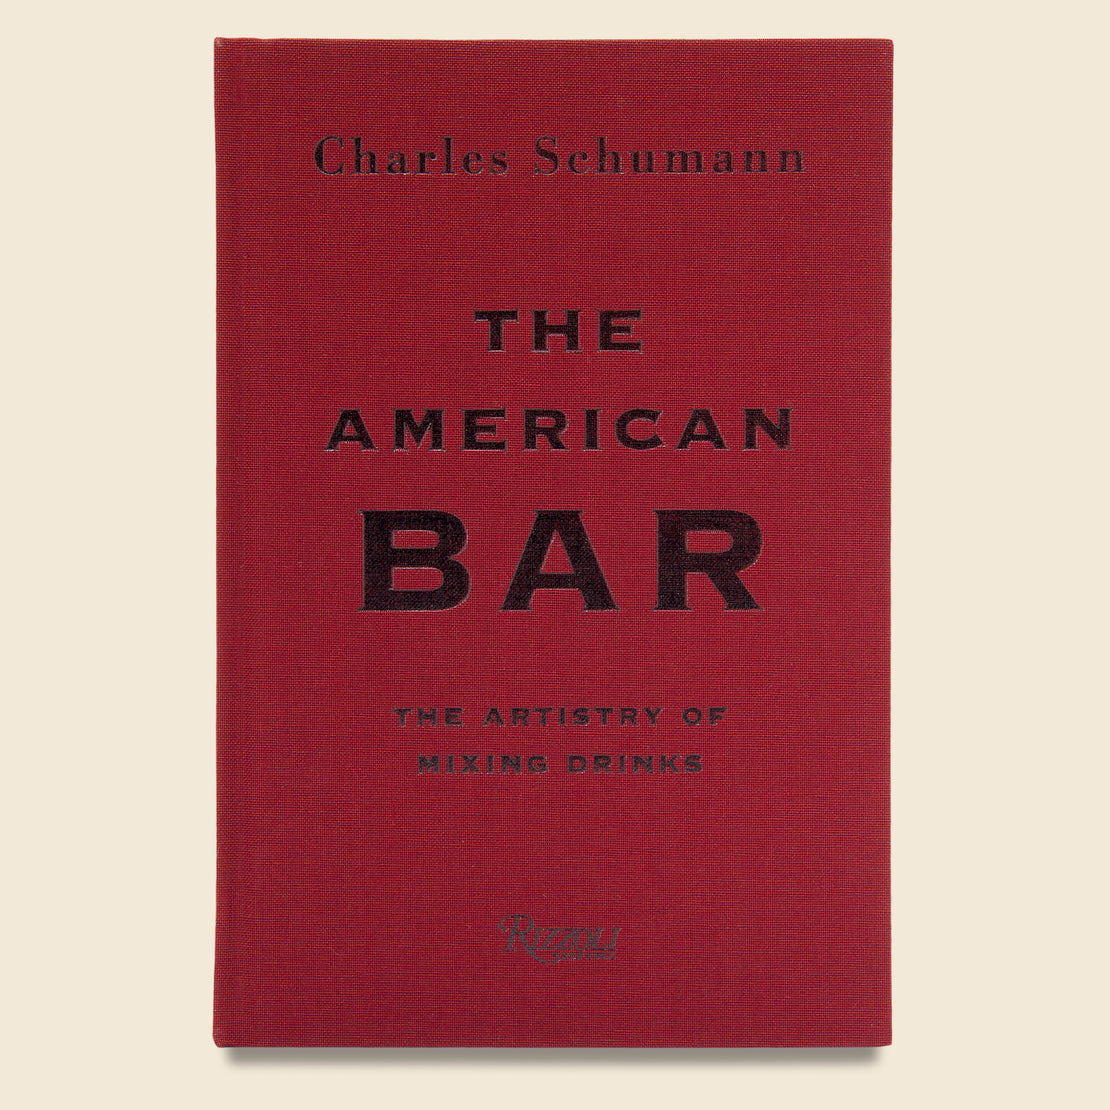 Bookstore The American Bar: The Artistry of Mixing Drinks - Charles Schumann